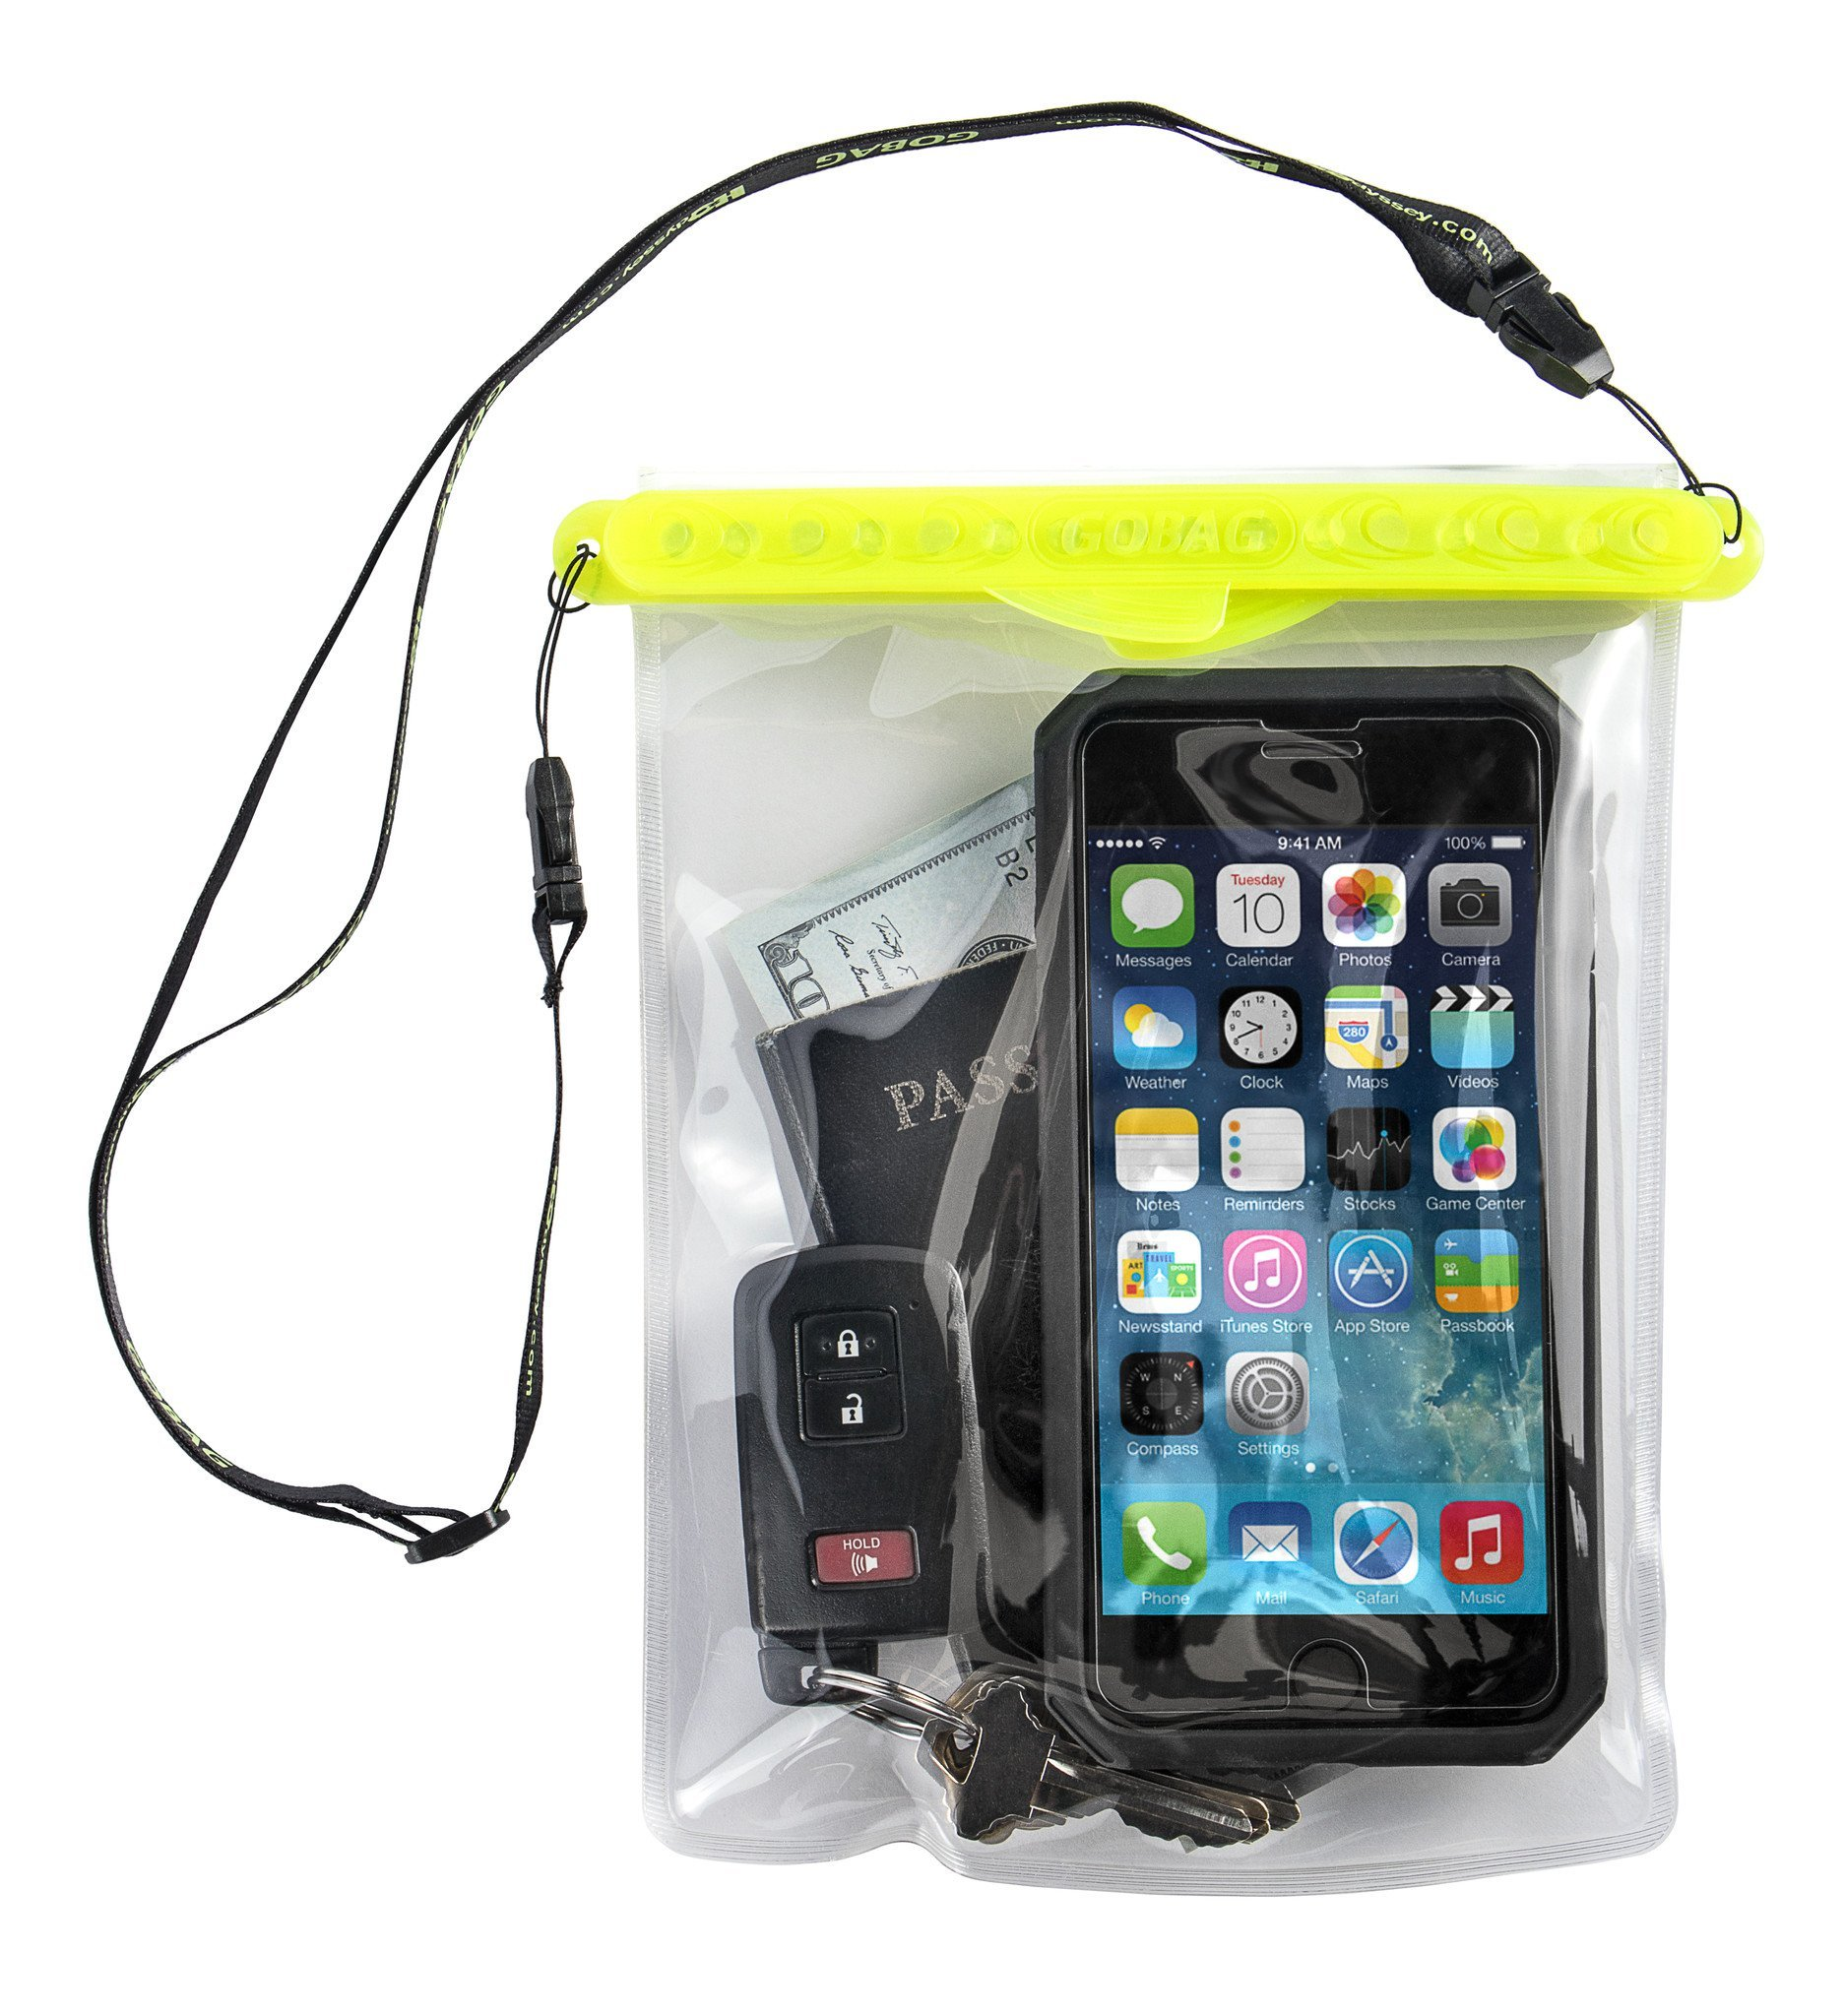 Go Bag Mako Dry Bag #1 Secure Air Tight Self-Sealing Magnetic Waterproof Case to 100 ft. Hermetic Seal Cell Phone Touchscreen Sensitive 7.5'' x 5.75'' Fits iPhone 6,7 8 + Plus (Yellow) by Go Bag (Image #2)